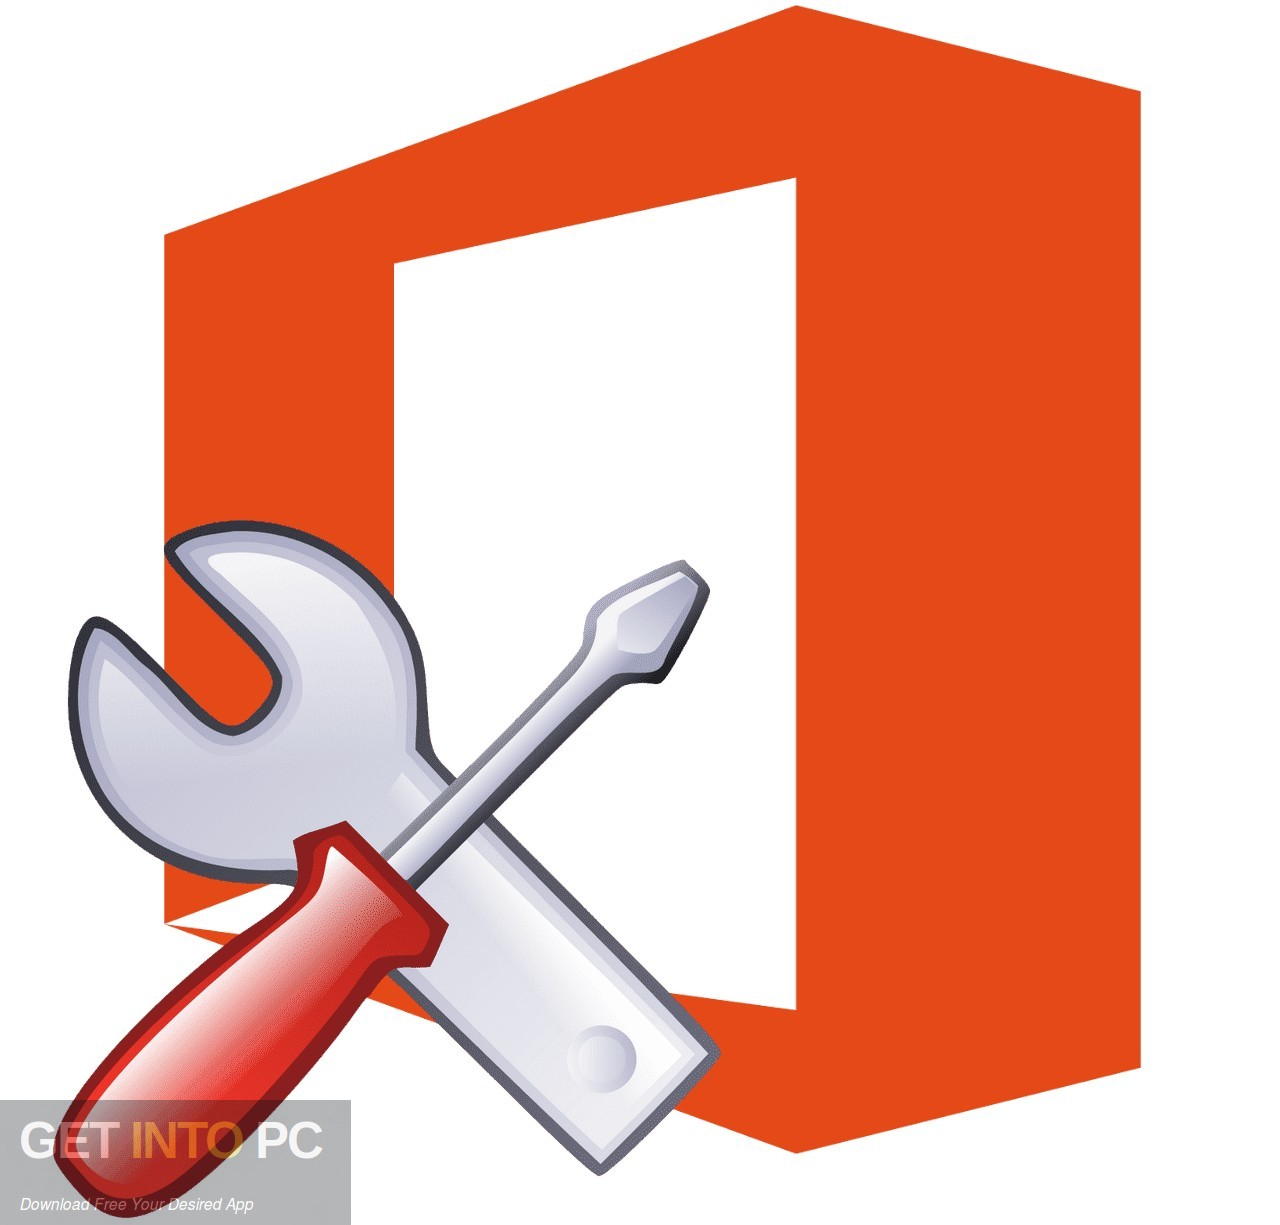 Office Tool Plus 2021 Free Download